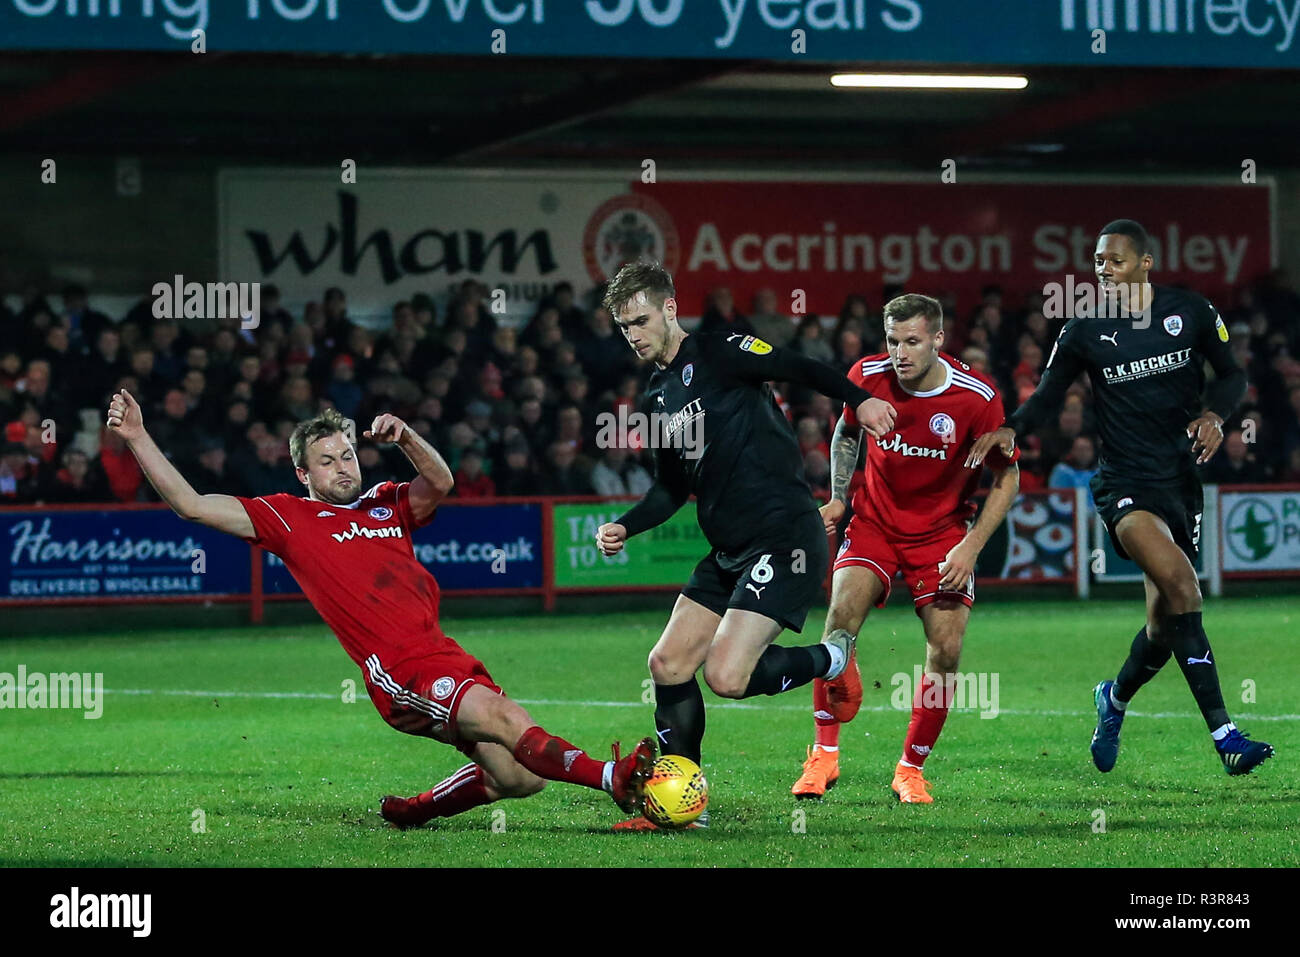 17th November 2018, Crown Ground, Accrington, England; Sky Bet League One, Accrington Stanley v Barnsley ; Mark Hughes (03) of Accrington Stanley slides in to win the ball from Liam Lindsay (06) of Barnsley    Credit: Mark Cosgrove/News Images  English Football League images are subject to DataCo Licence - Stock Image